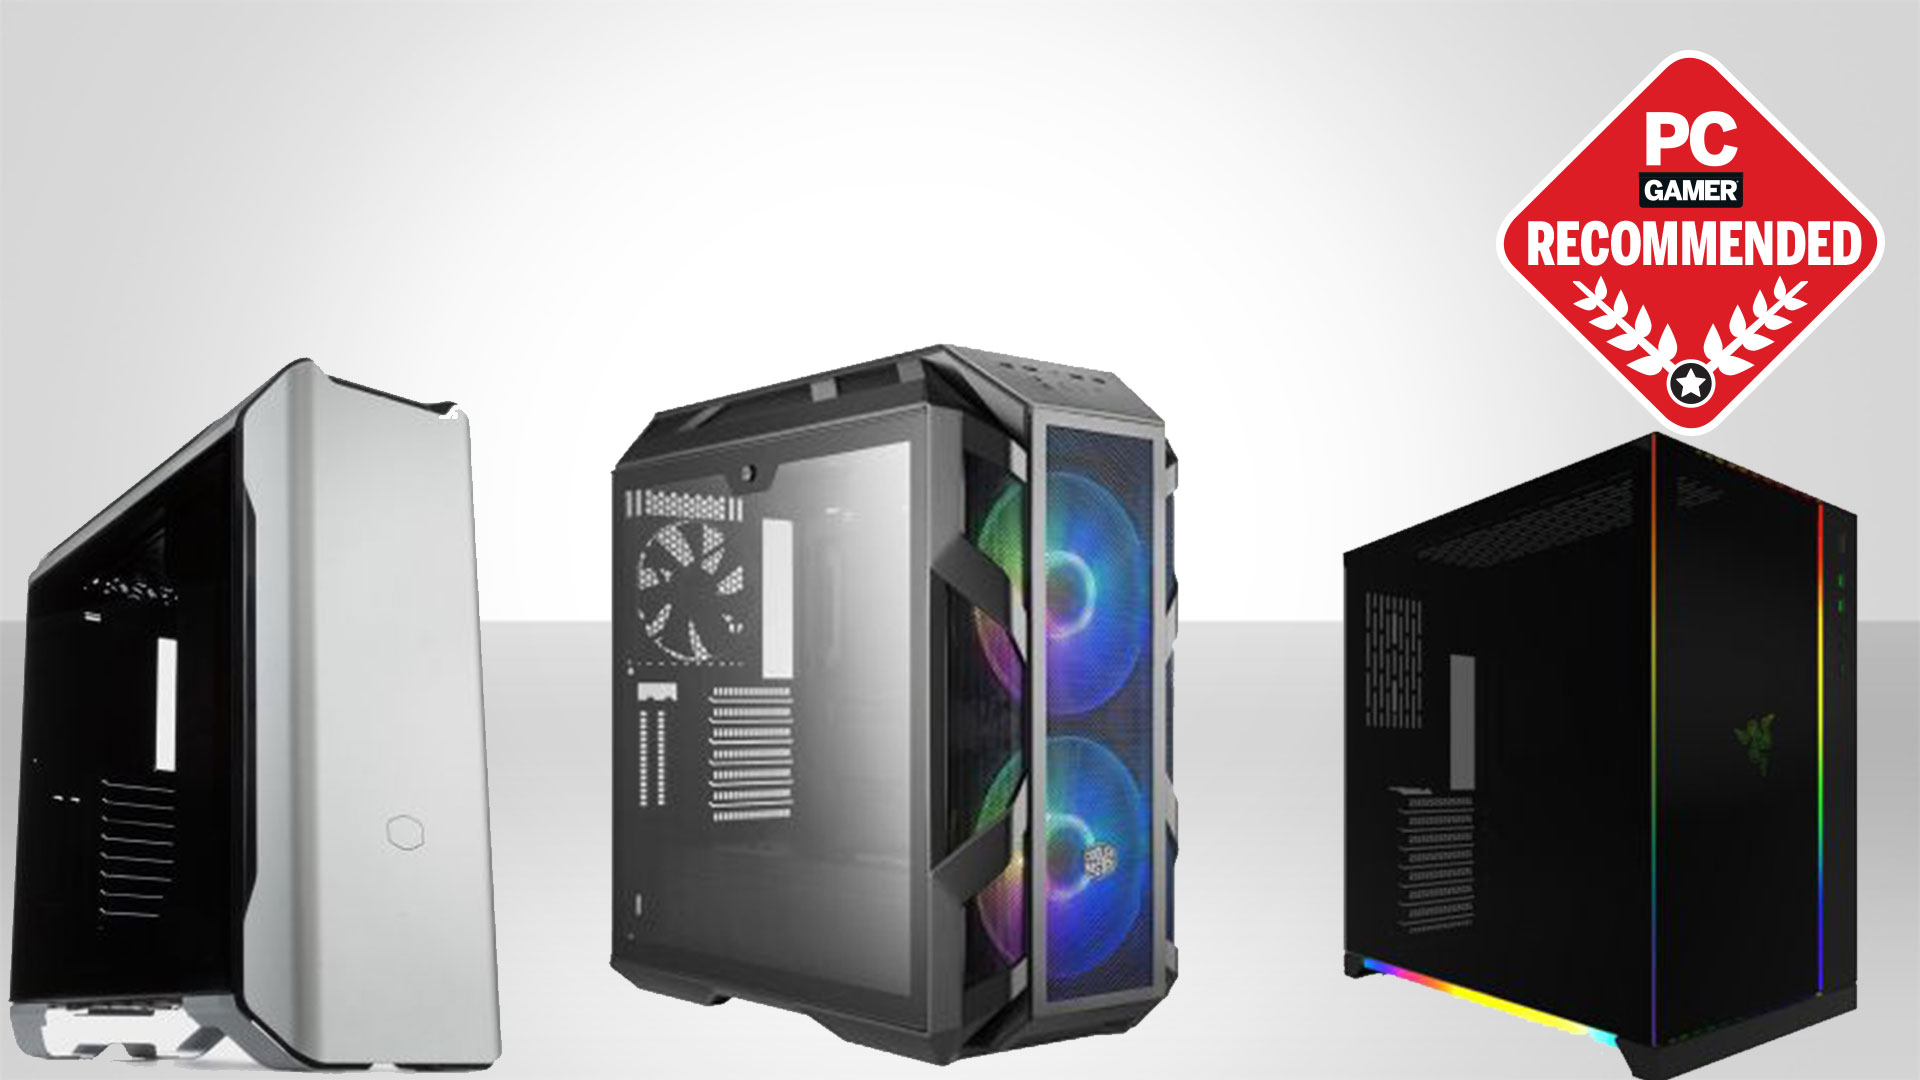 NZXT H500 Compact ATX Mid-Tower PC Gaming Case All-St Tempered Glass Panel